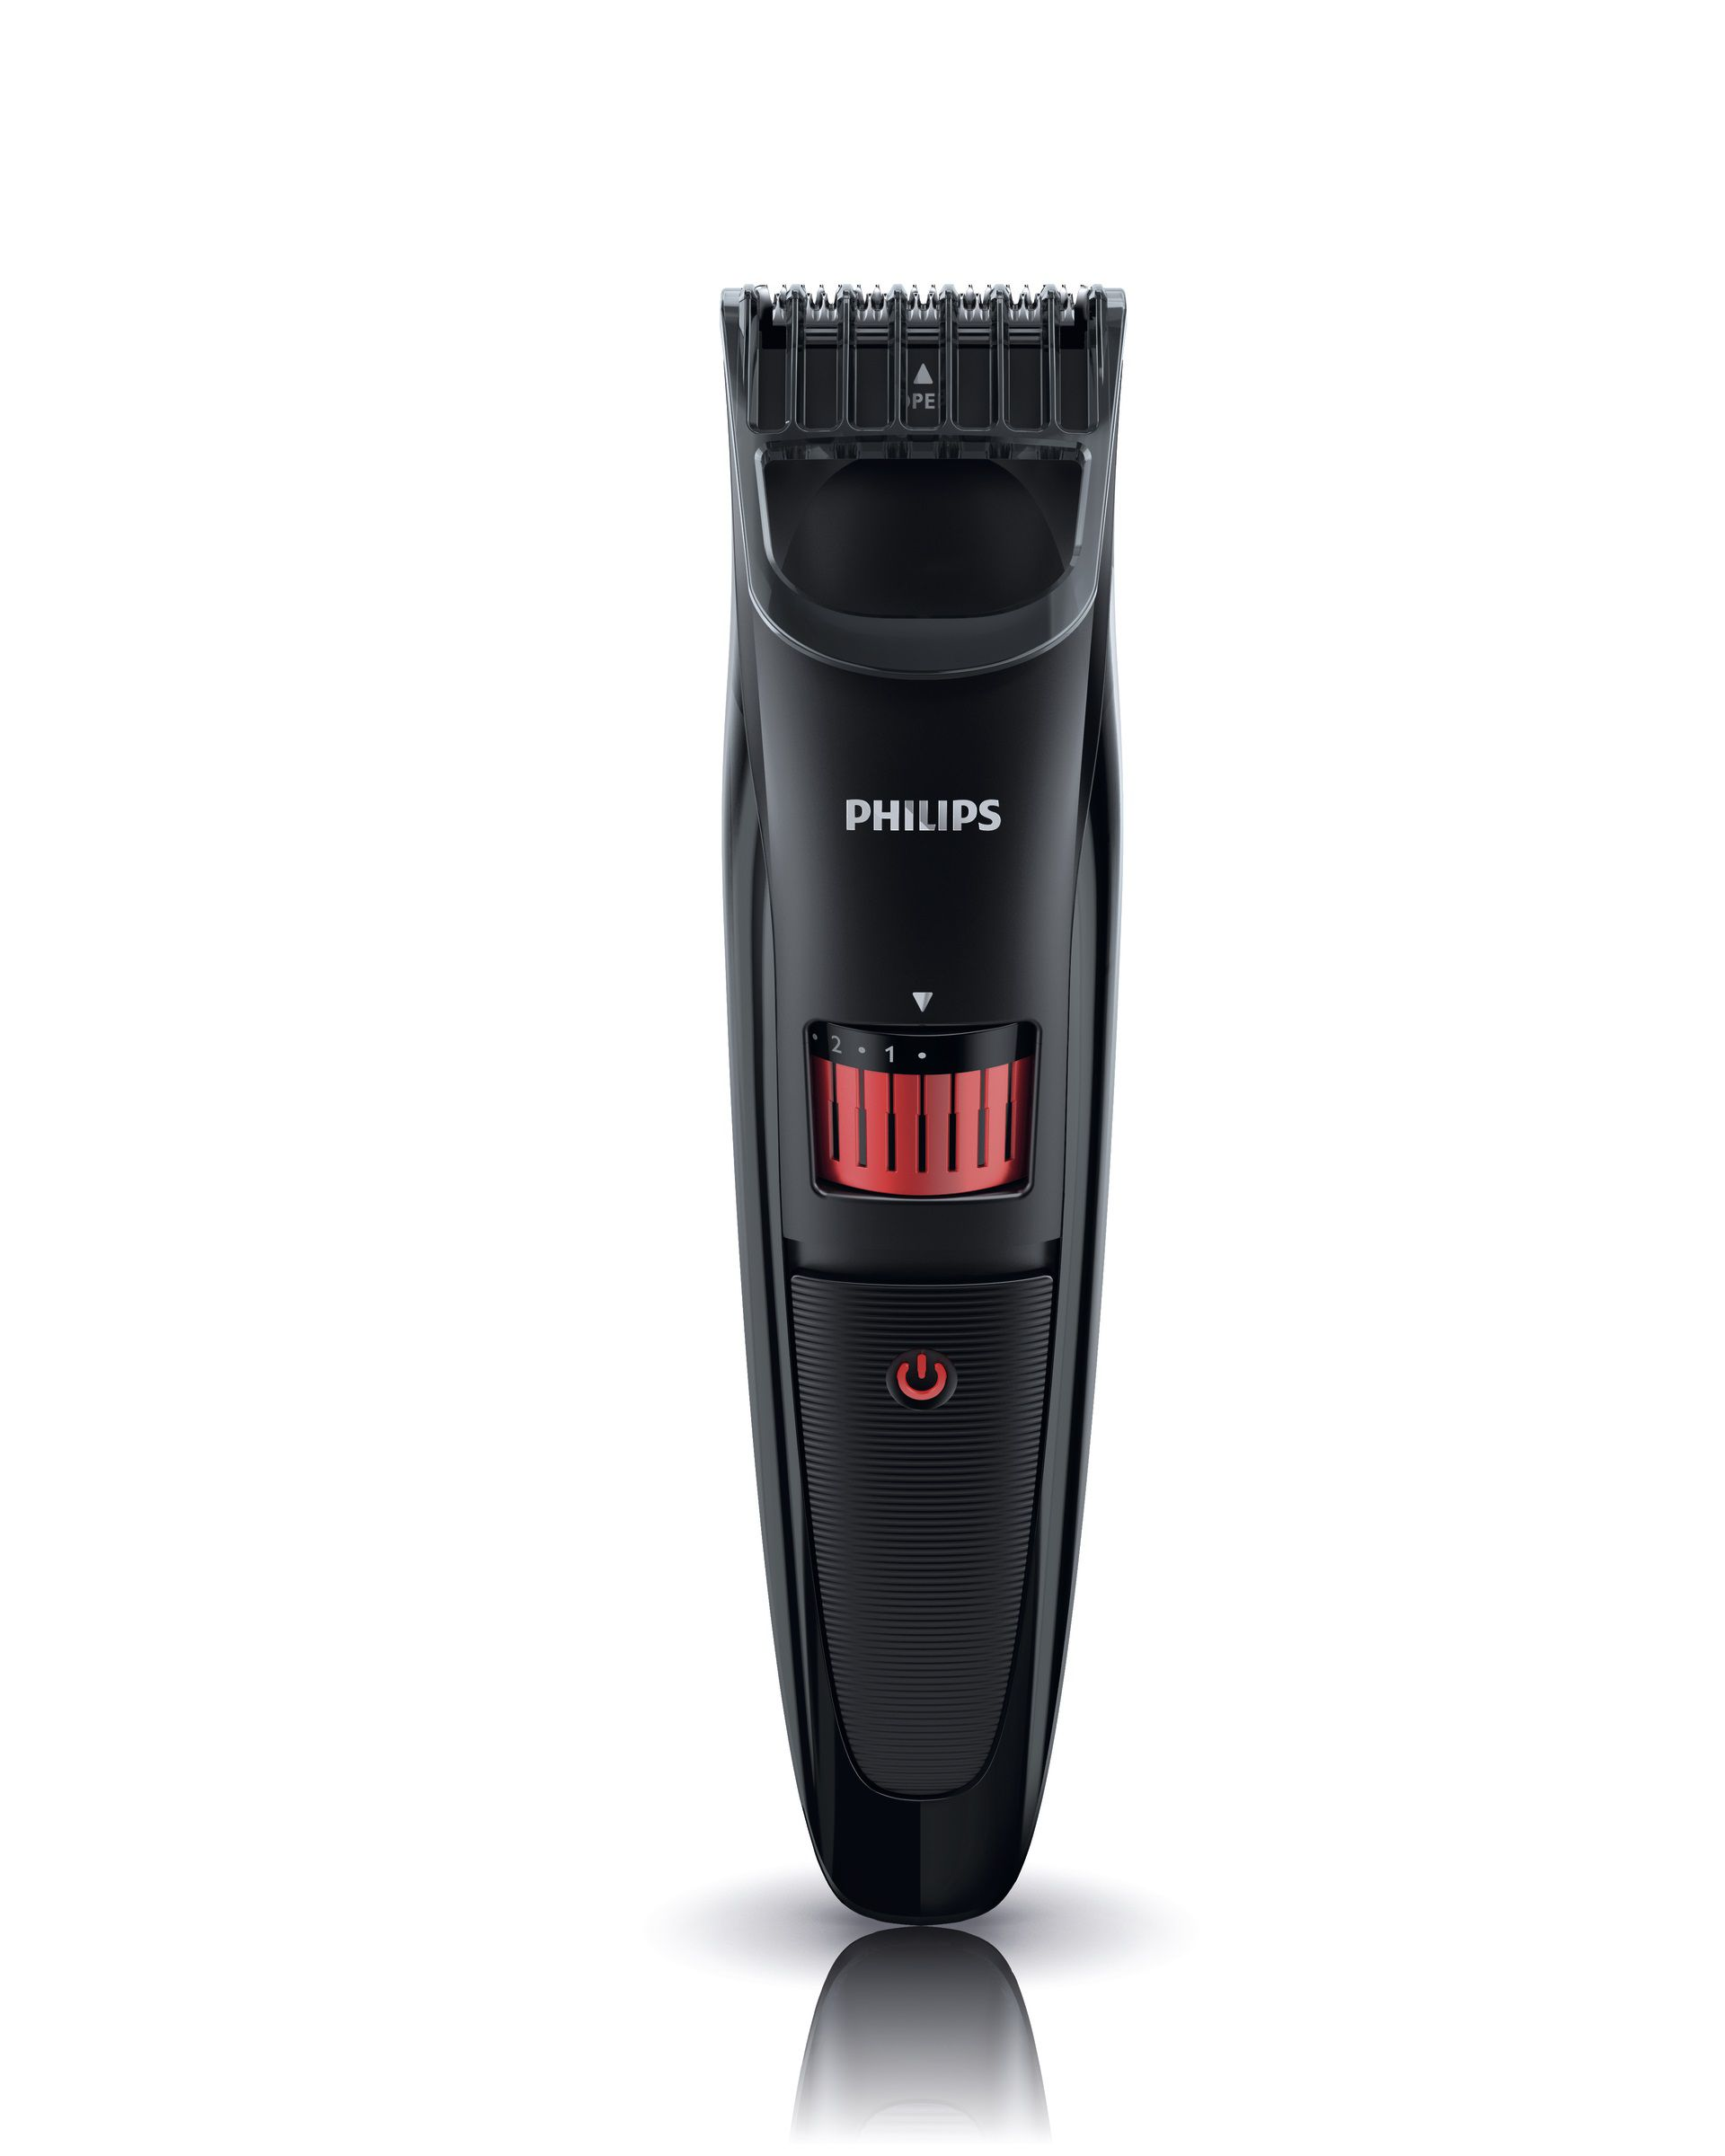 Philips QT4005 15 Pro Beard Trimmer Black Buy Philips QT4005 15